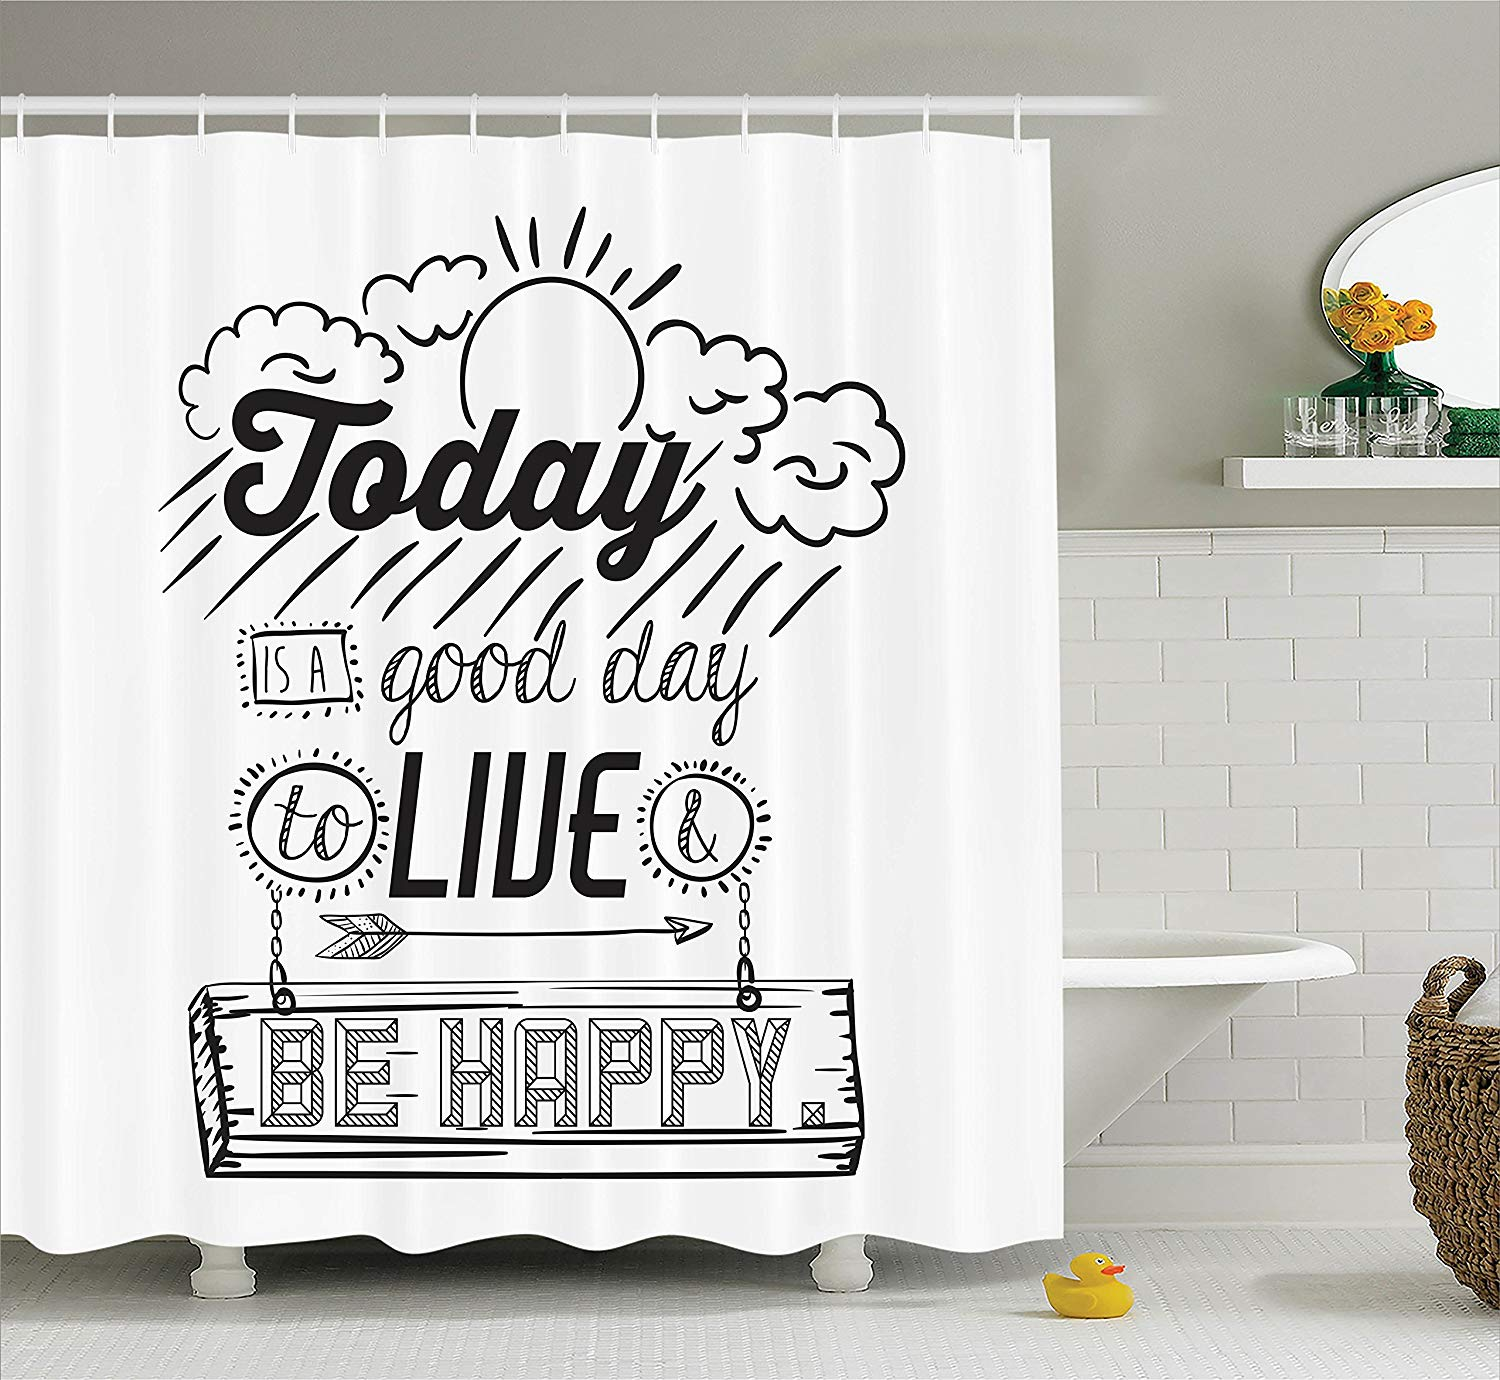 Quote Shower Curtain Funny by Today is a Good Day to Live Be Happy Enjoy Reminding Gratitude Inspire Vision Image image